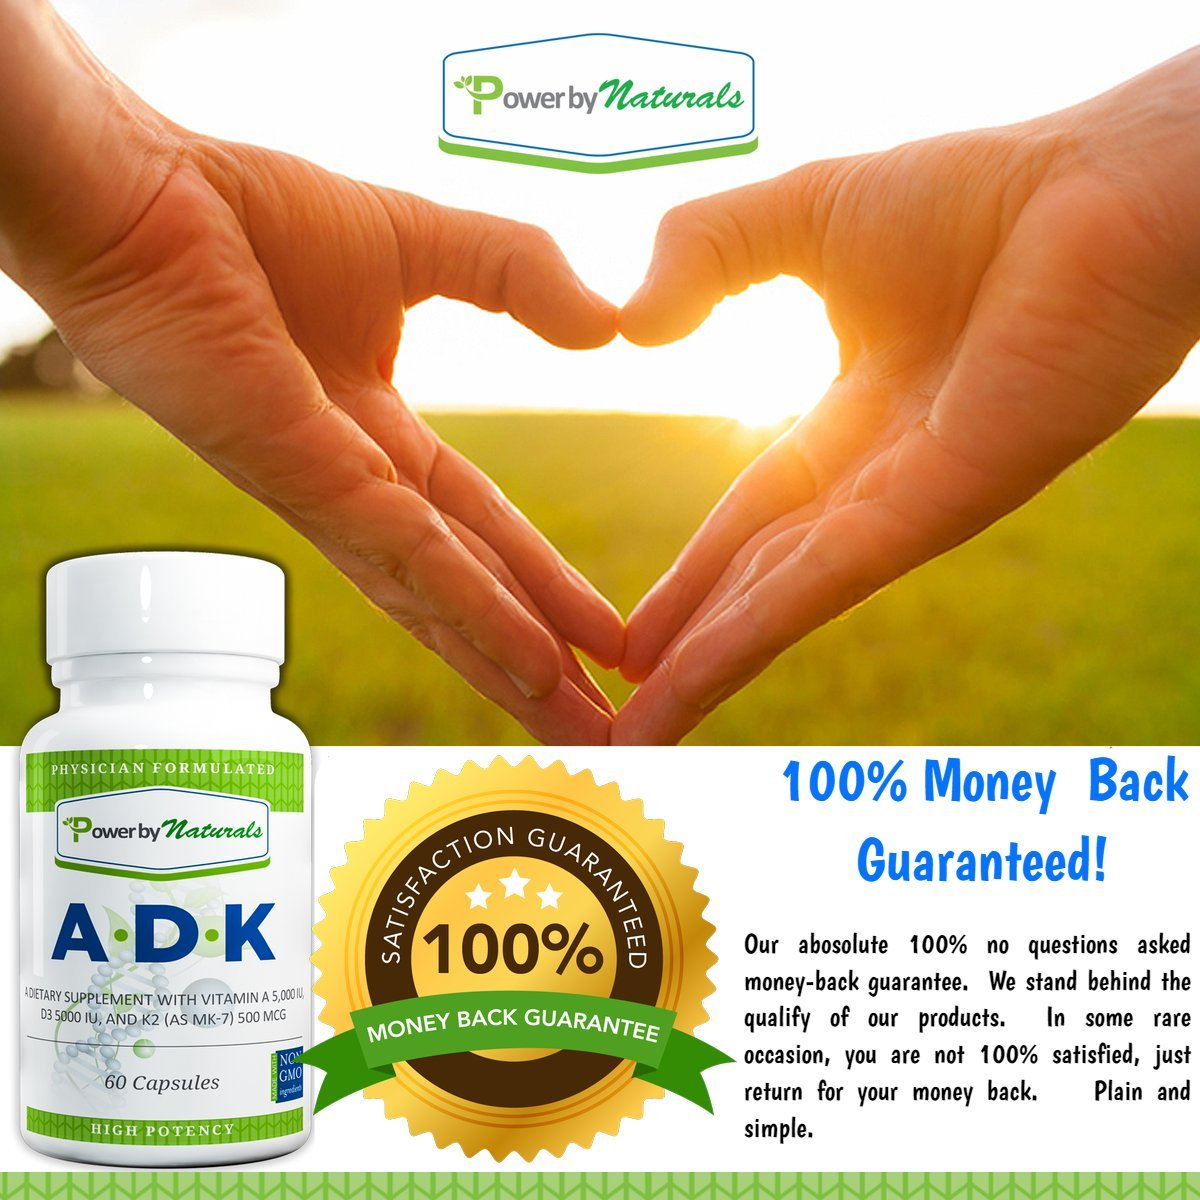 Amazon.com: Vitamin ADK ~ High Potency [ Vitamin A 5000 iu | D3 5000 iu| K2 (as MK-7) 500mcg ] Supplement For Bone Strength and Heart Health, Dr. Formulated ...